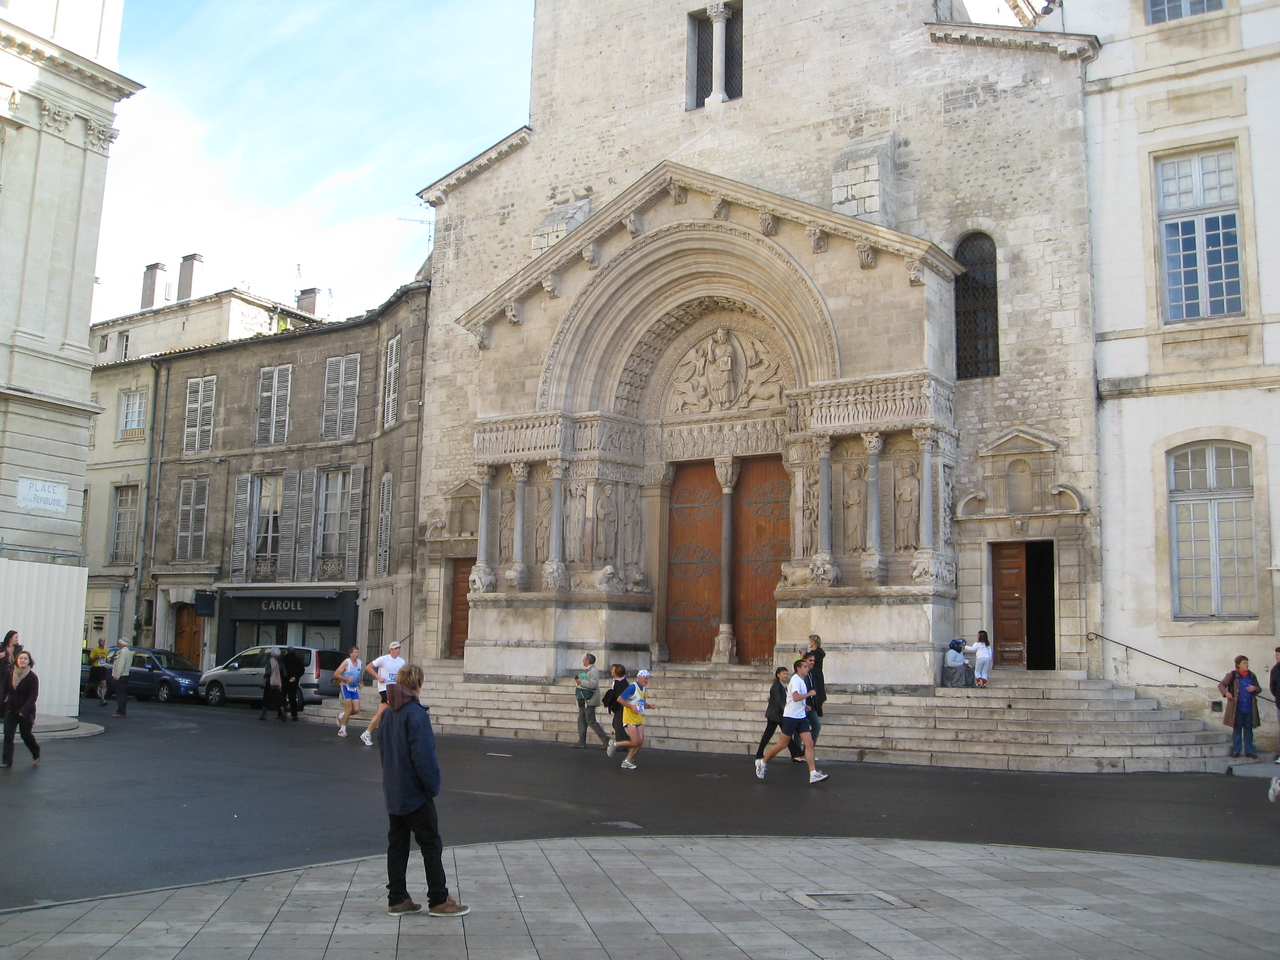 St. Trophime Church